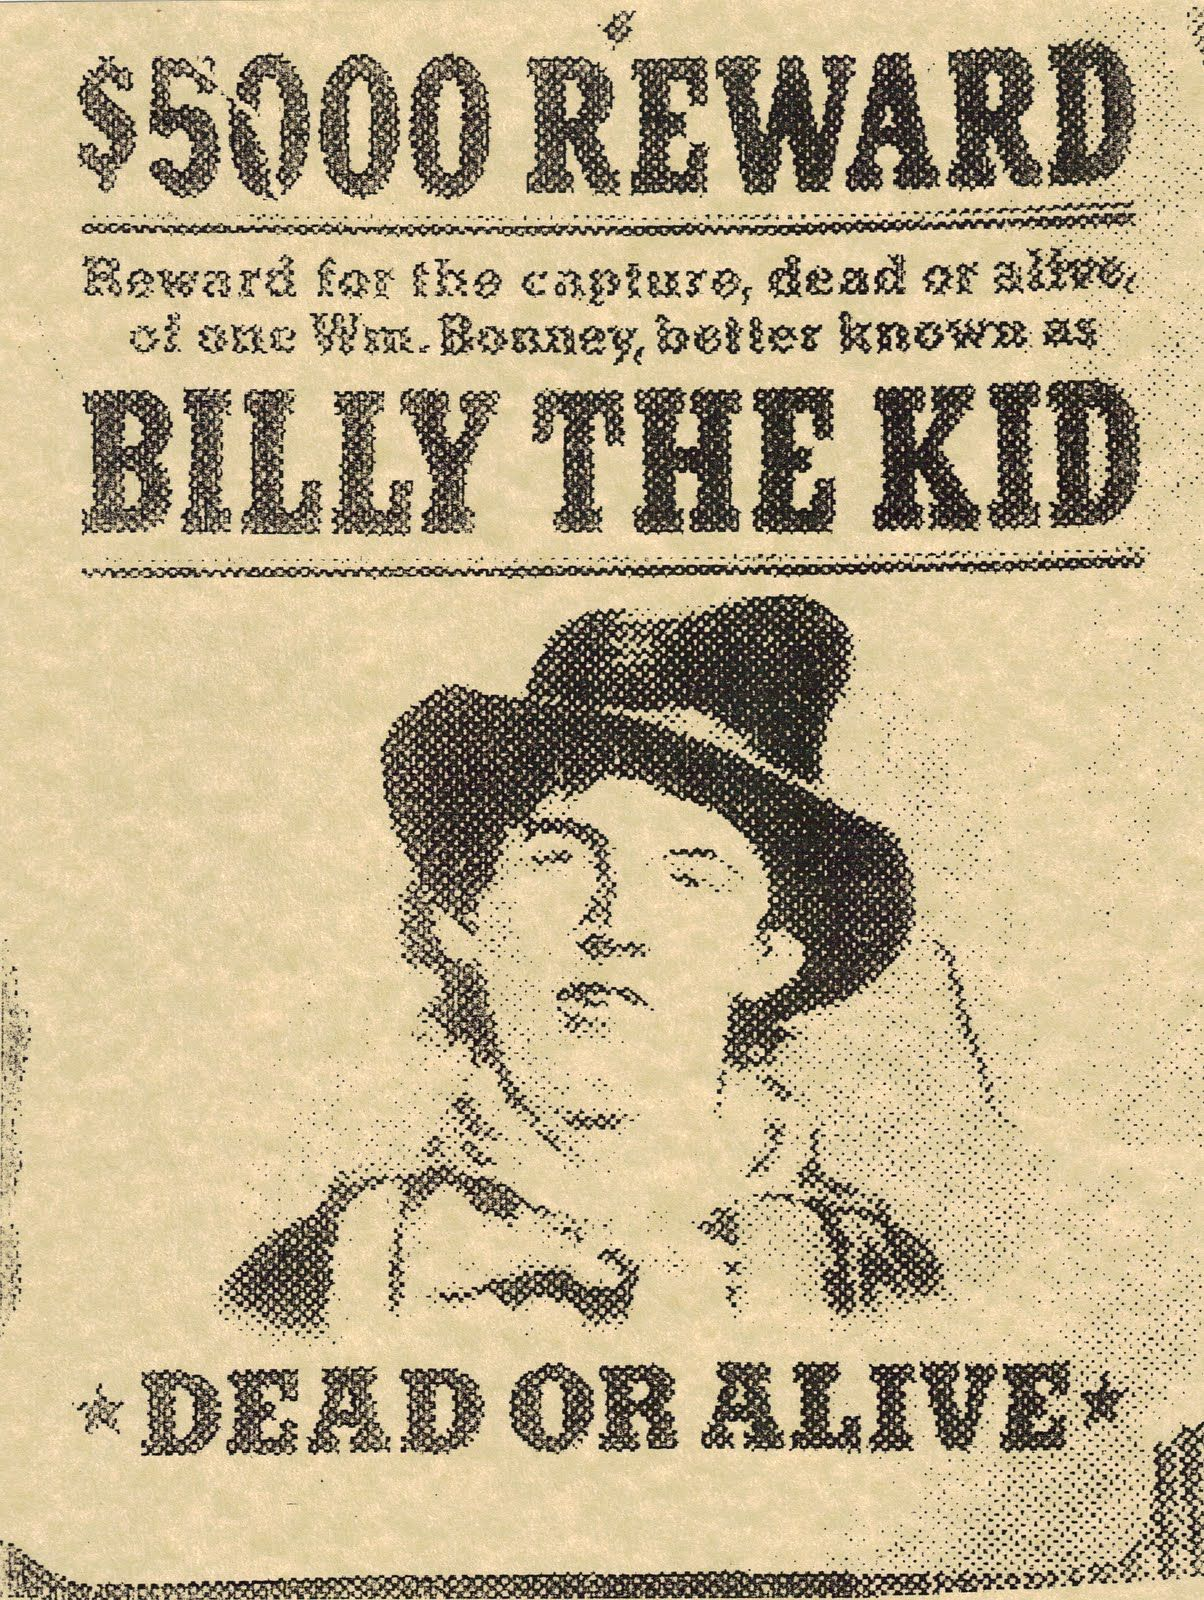 Wanted Dead Or Alive Billy The Kid Old West Billy The Kids Wild West